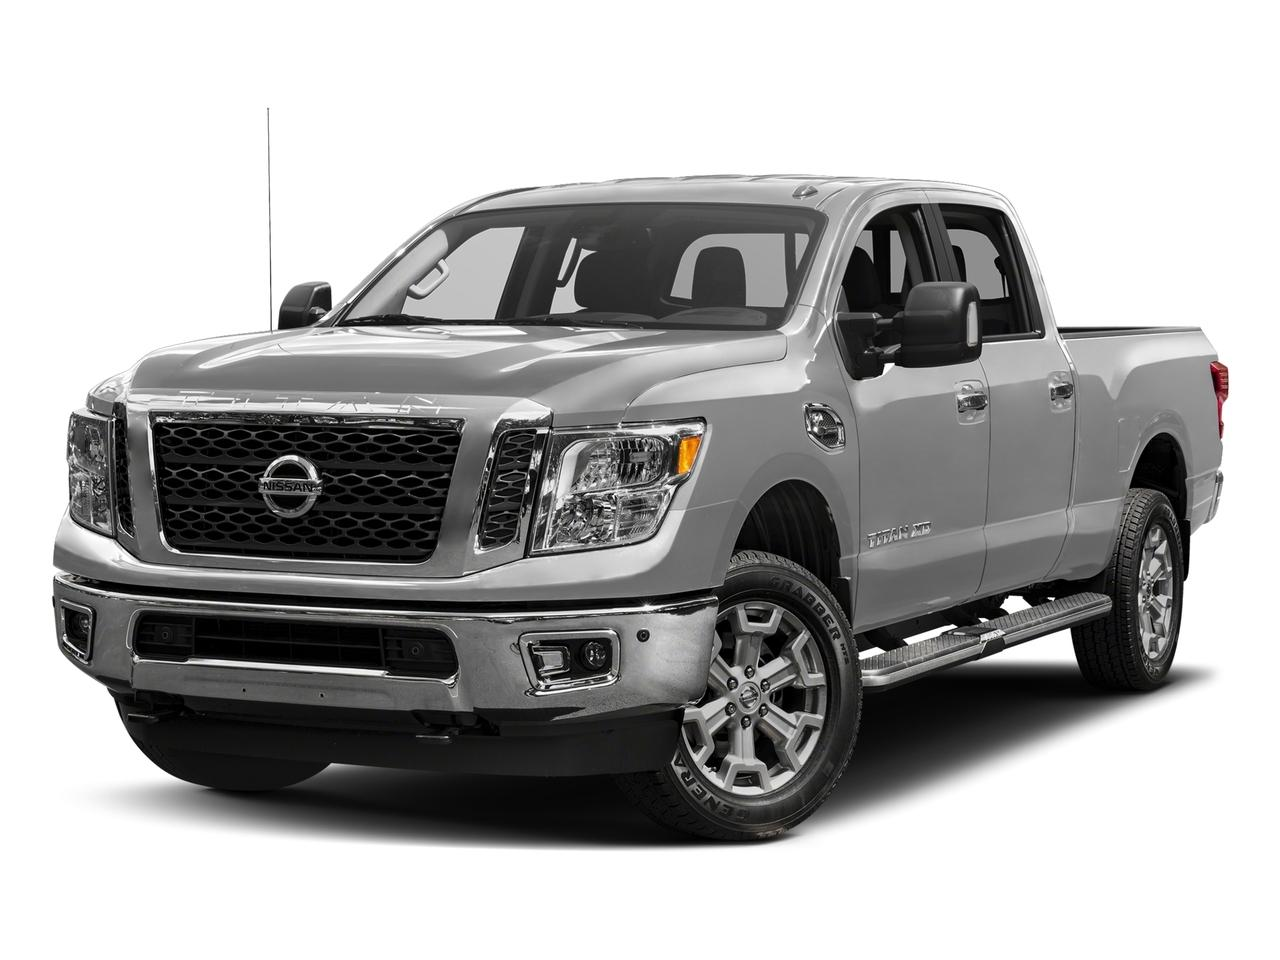 2017 Nissan Titan XD Vehicle Photo in Independence, MO 64055